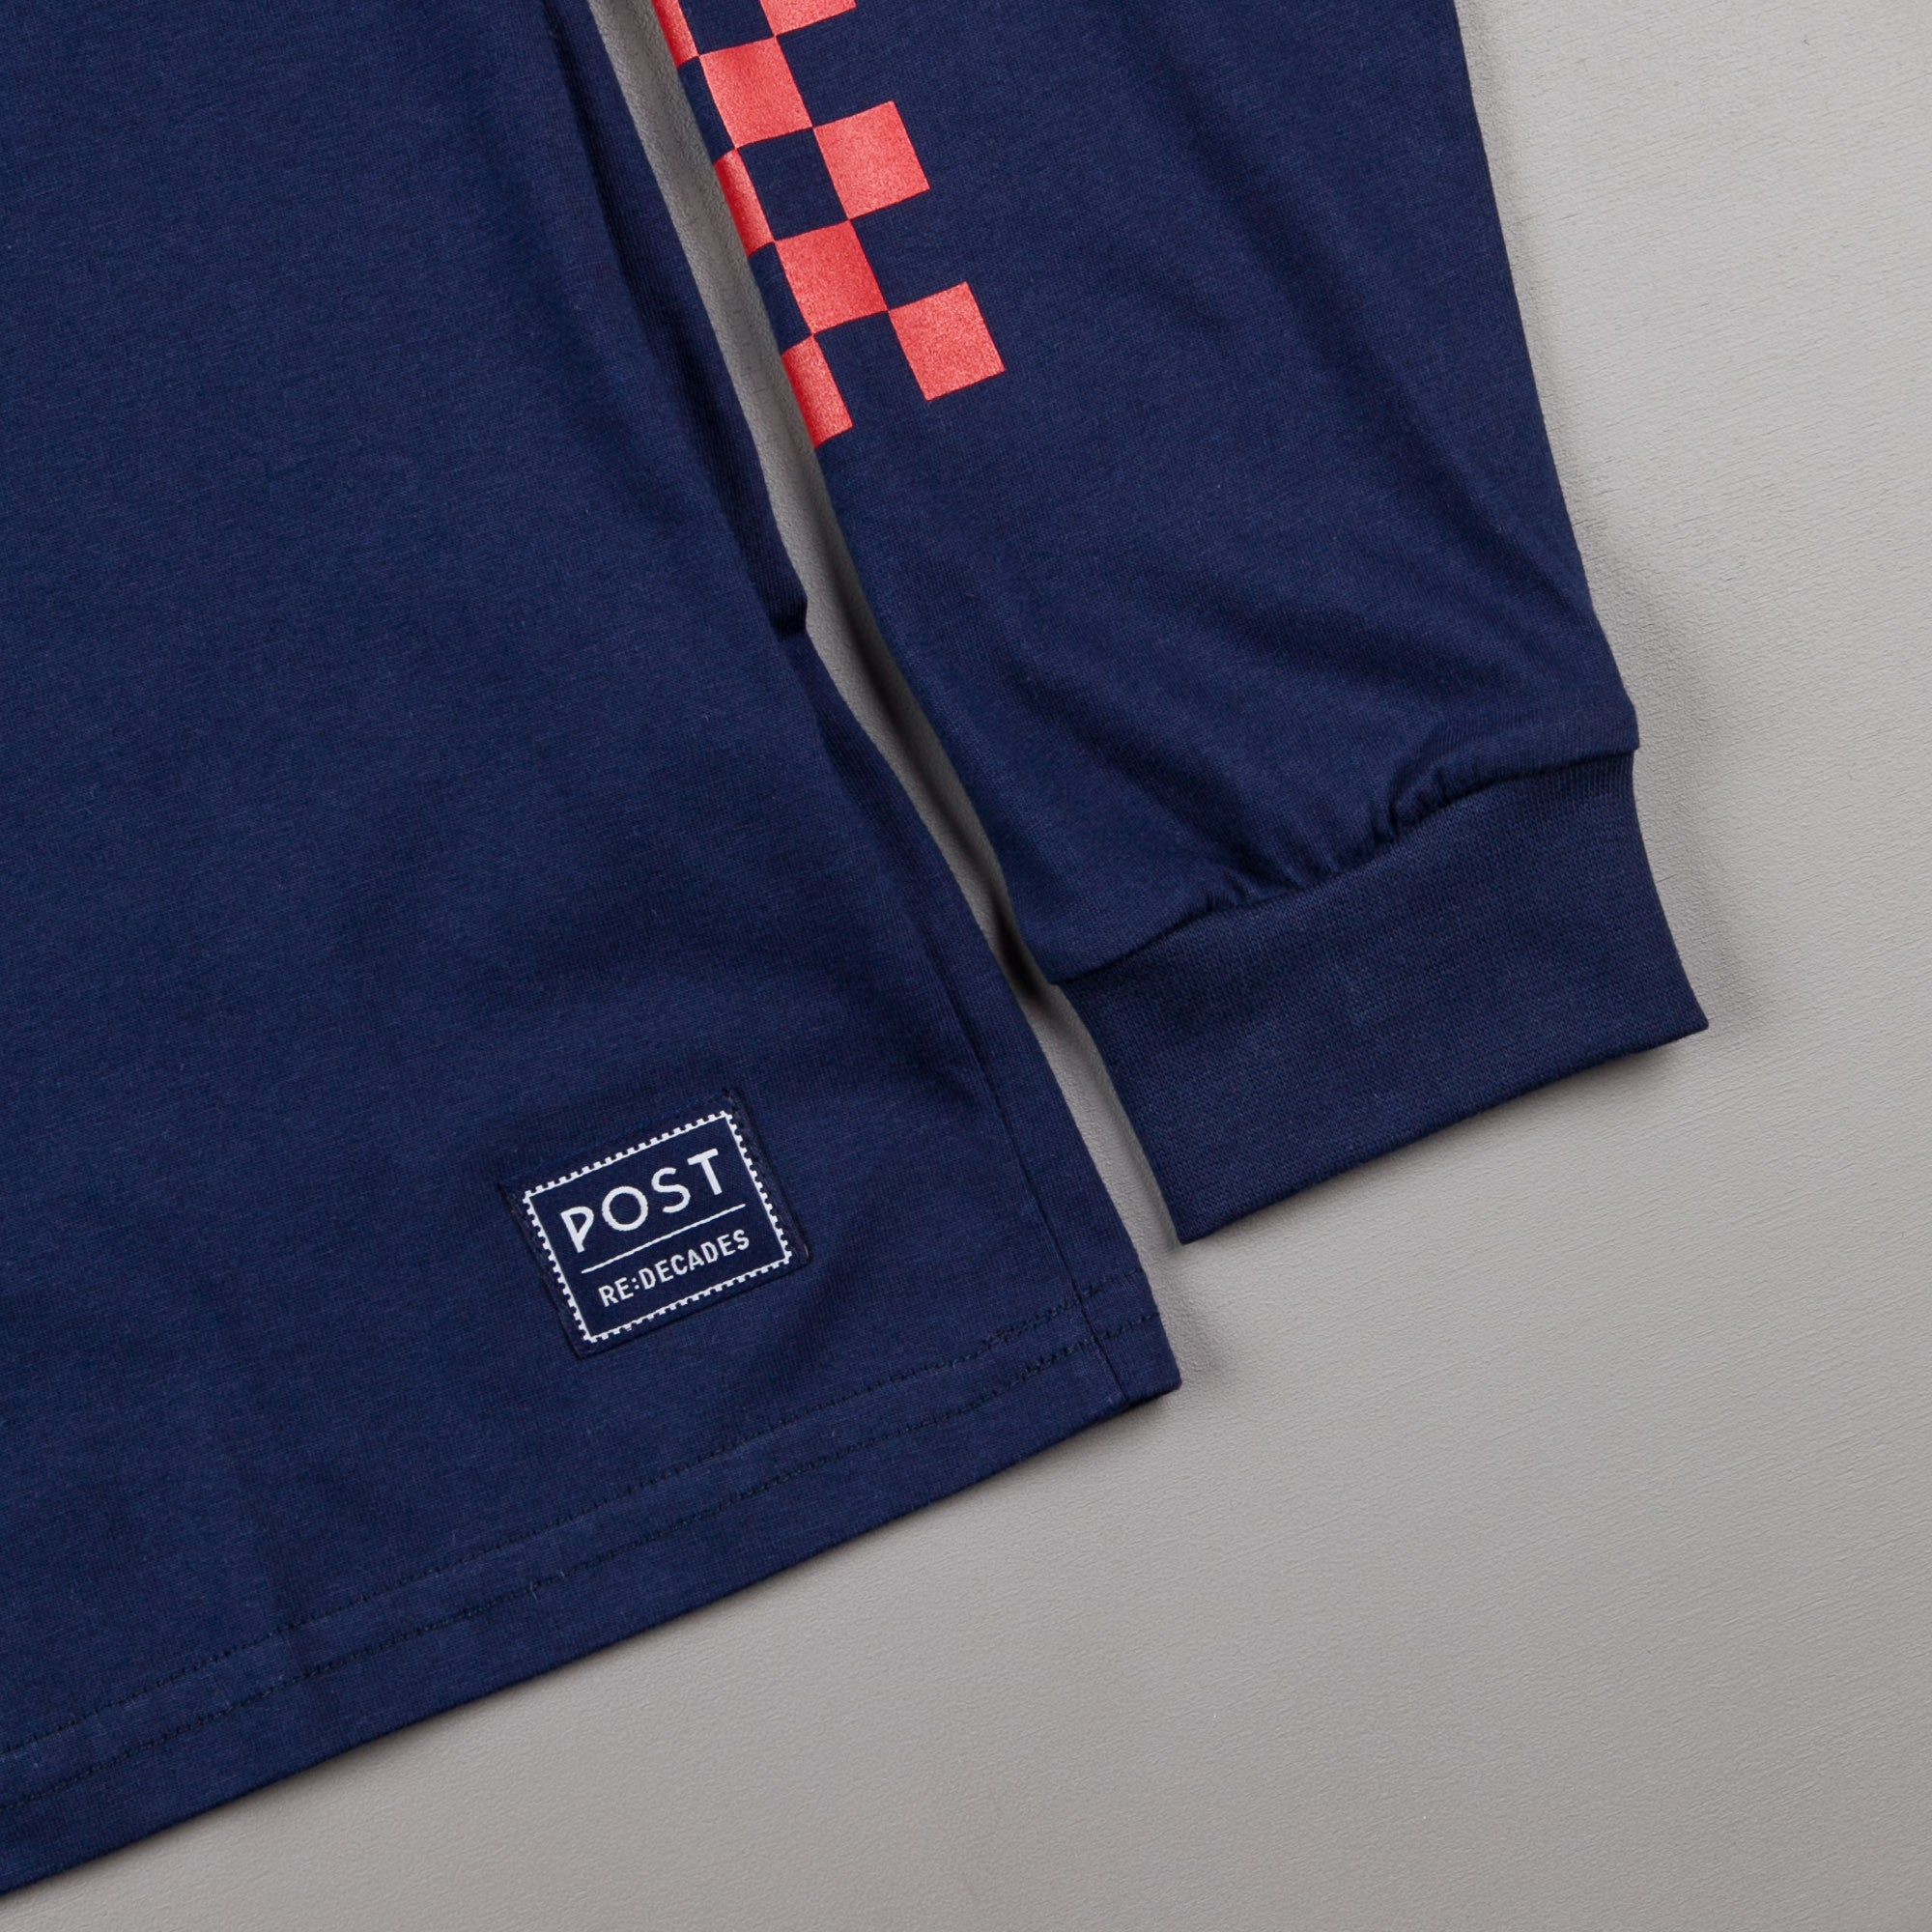 Post Details Decades Class Of '78 Long Sleeve T-Shirt - Navy